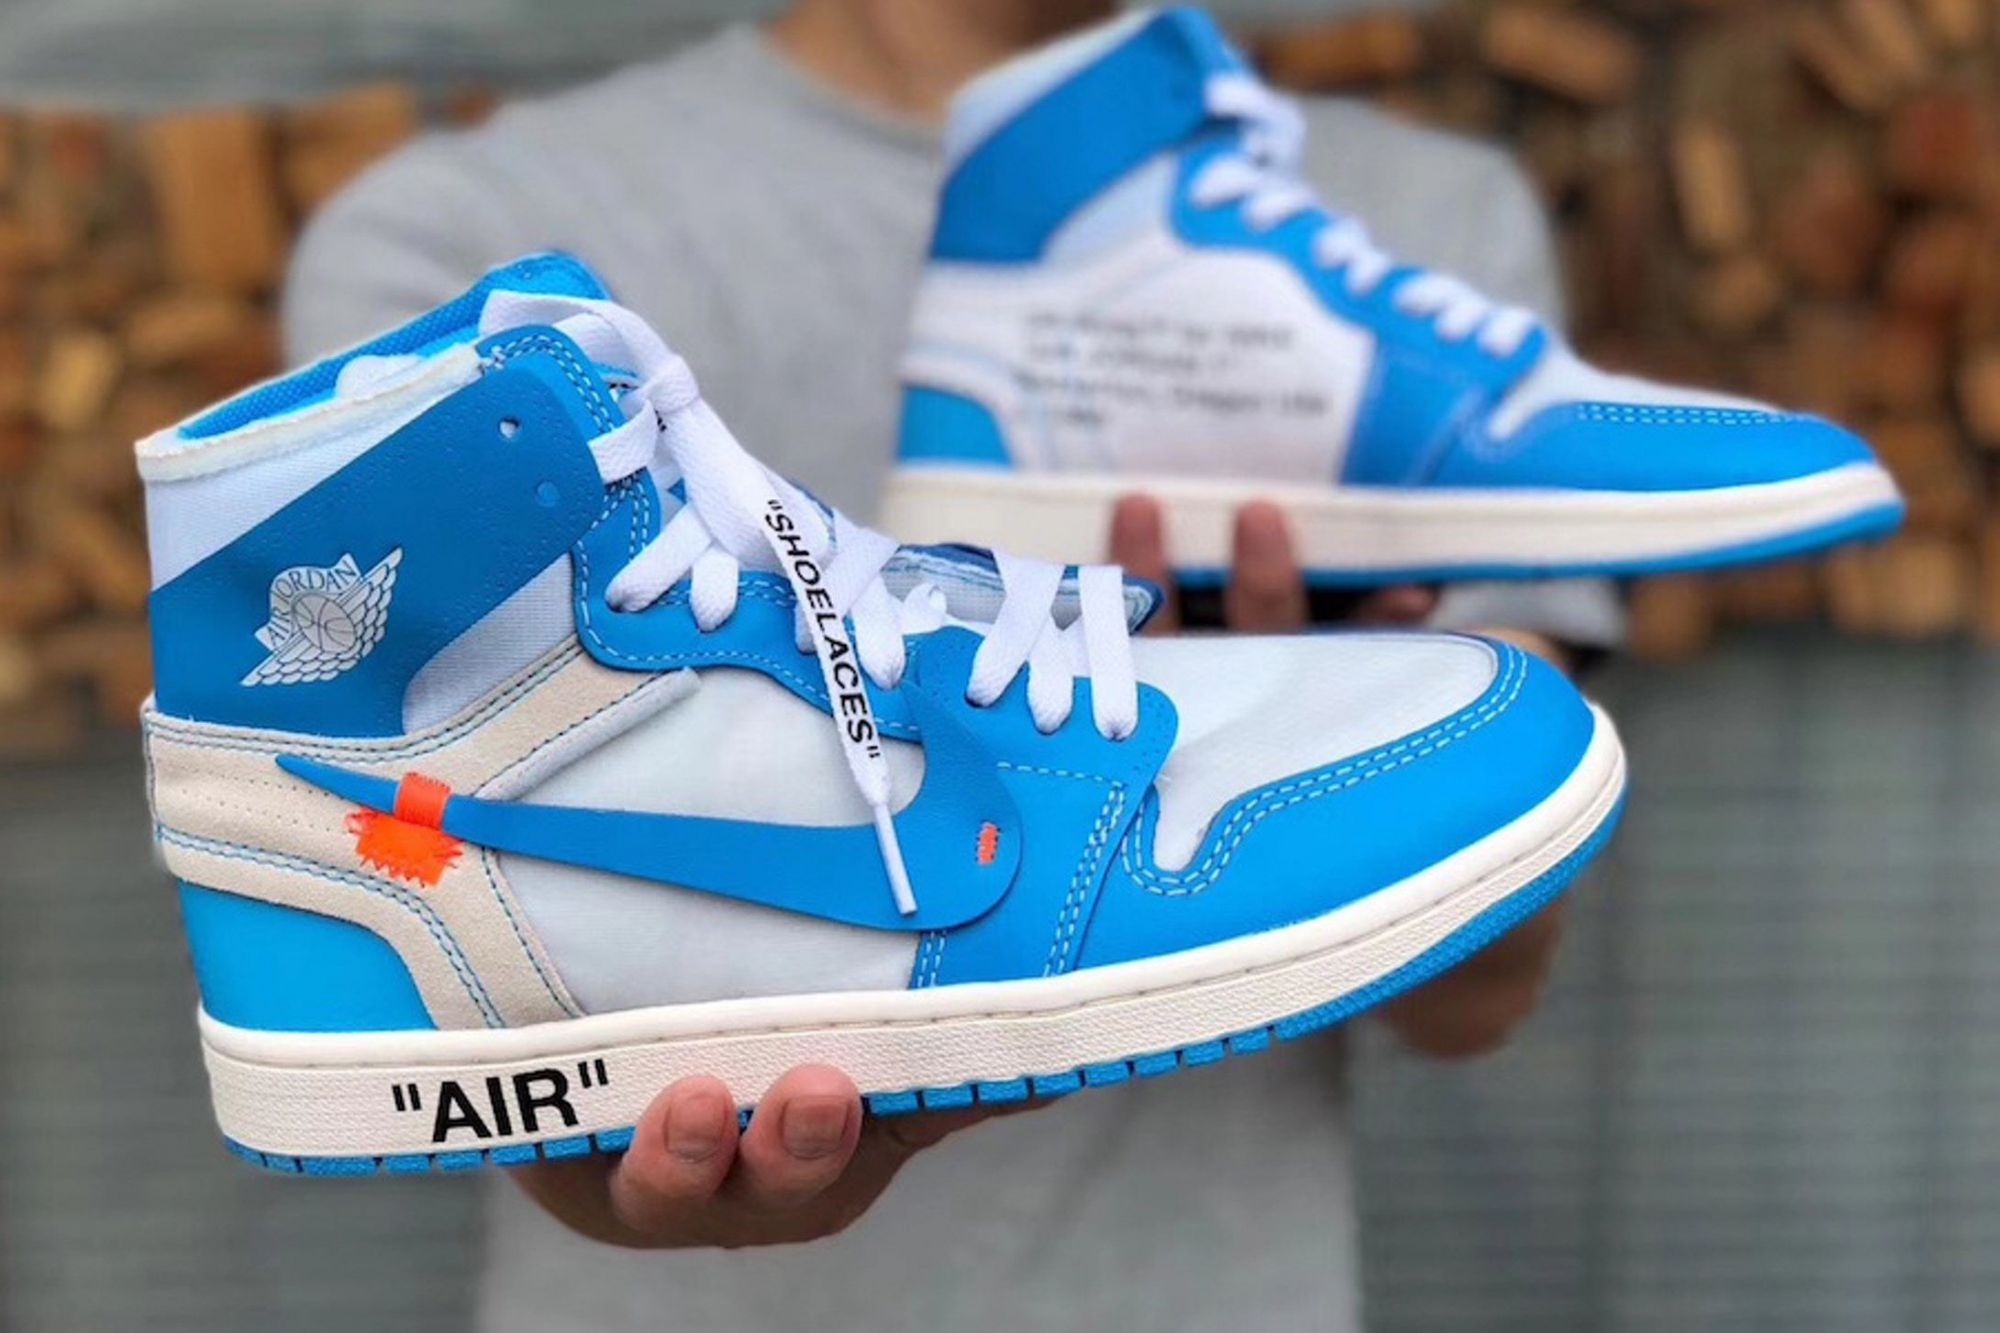 Unveiled the release date of the Off-White x Nike Air Jordan ...